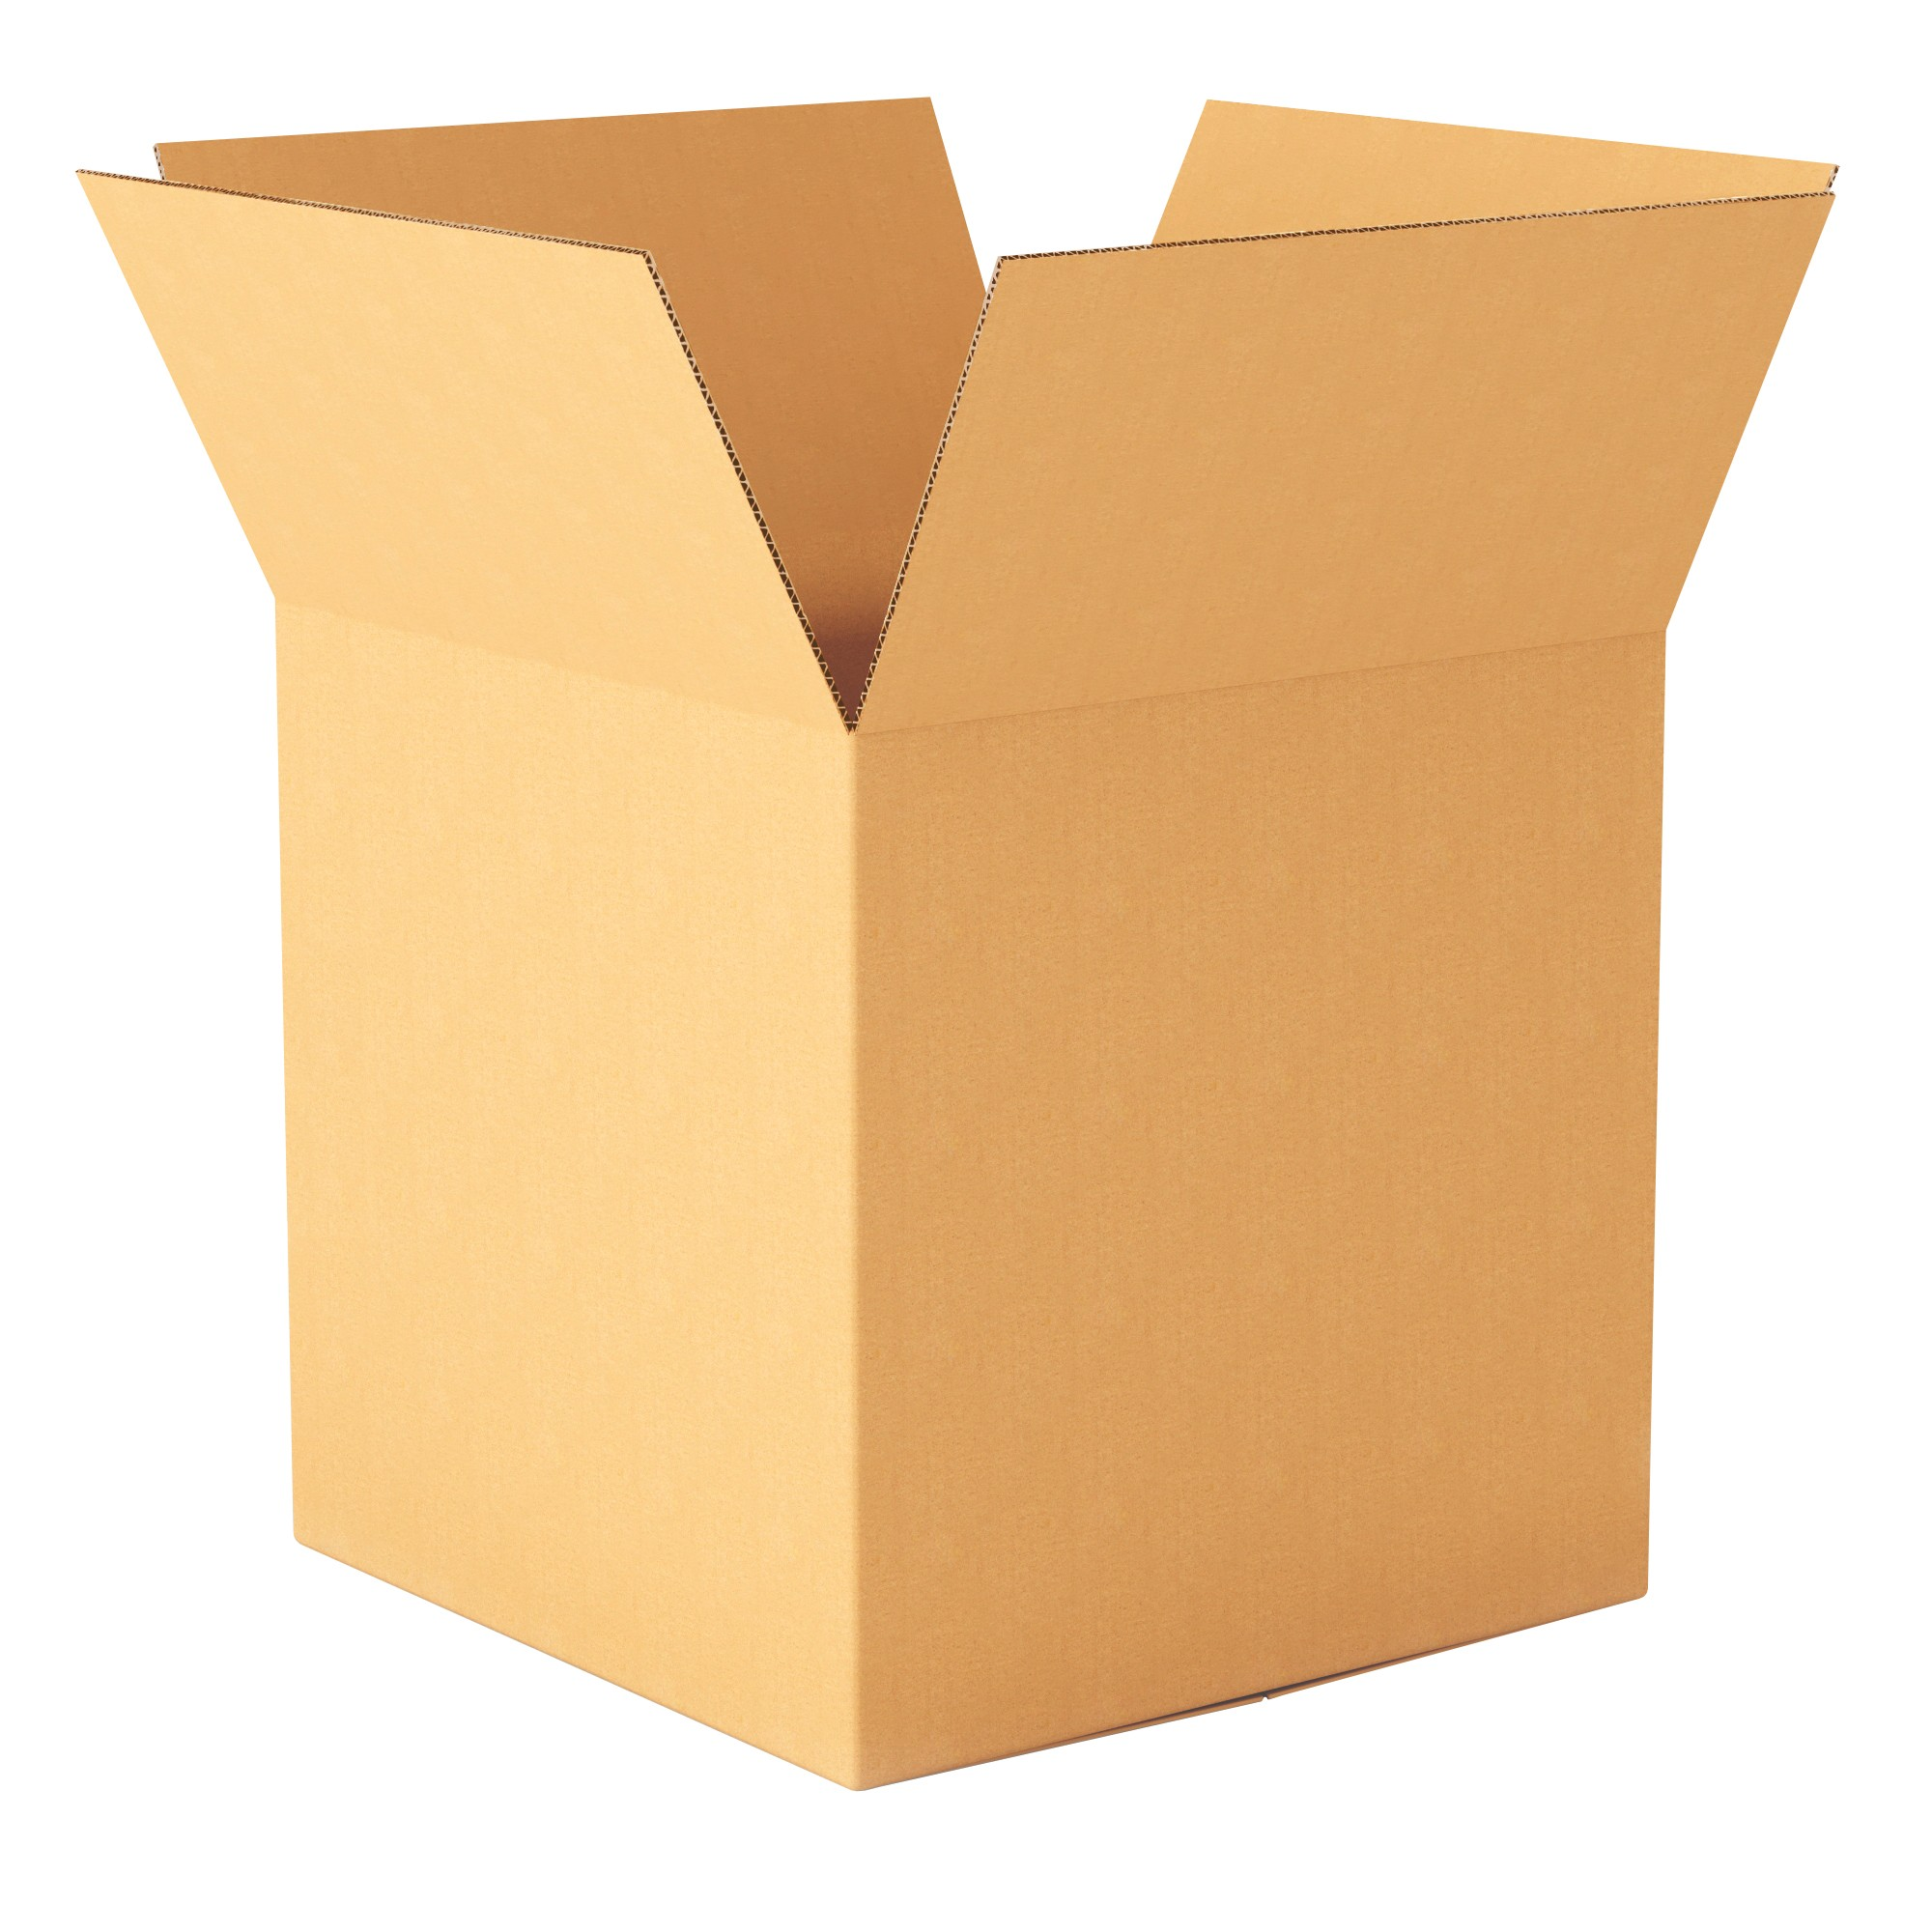 """TOTALPACK® 36 x 36 x 36"""" Single Wall Corrugated Boxes 5 Units"""